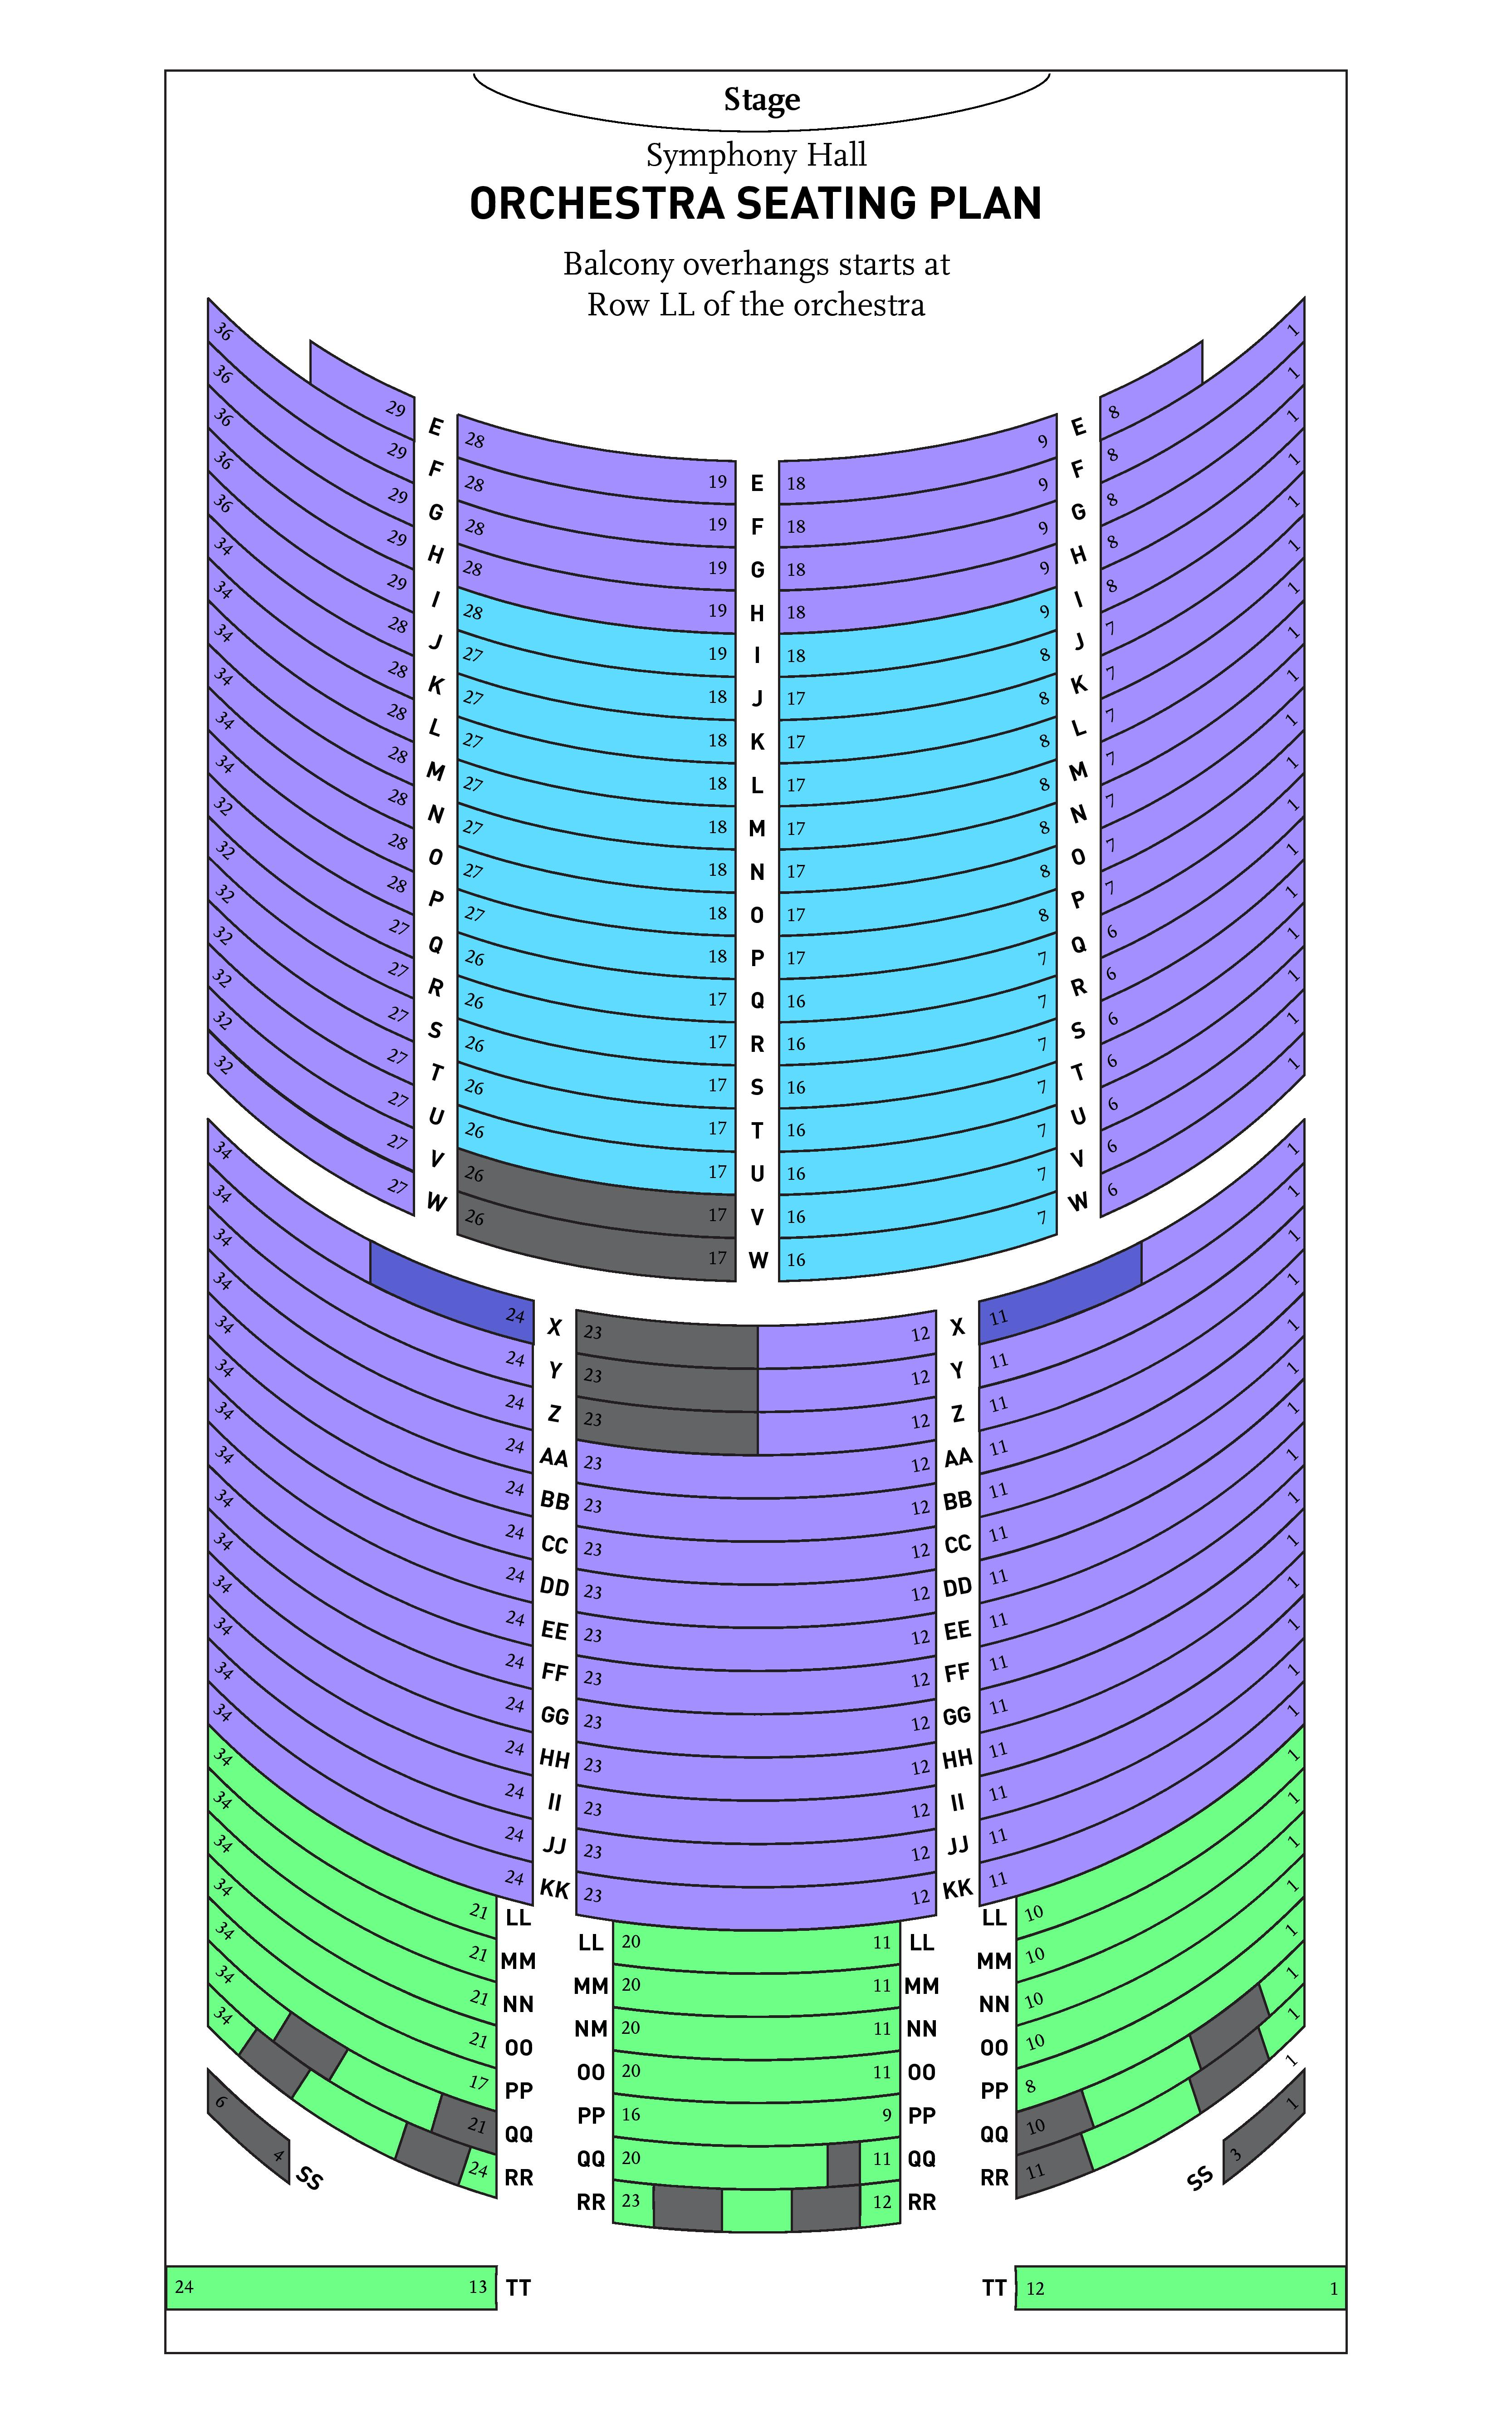 BPYO Symphony Hall Orchestra Seating Chart